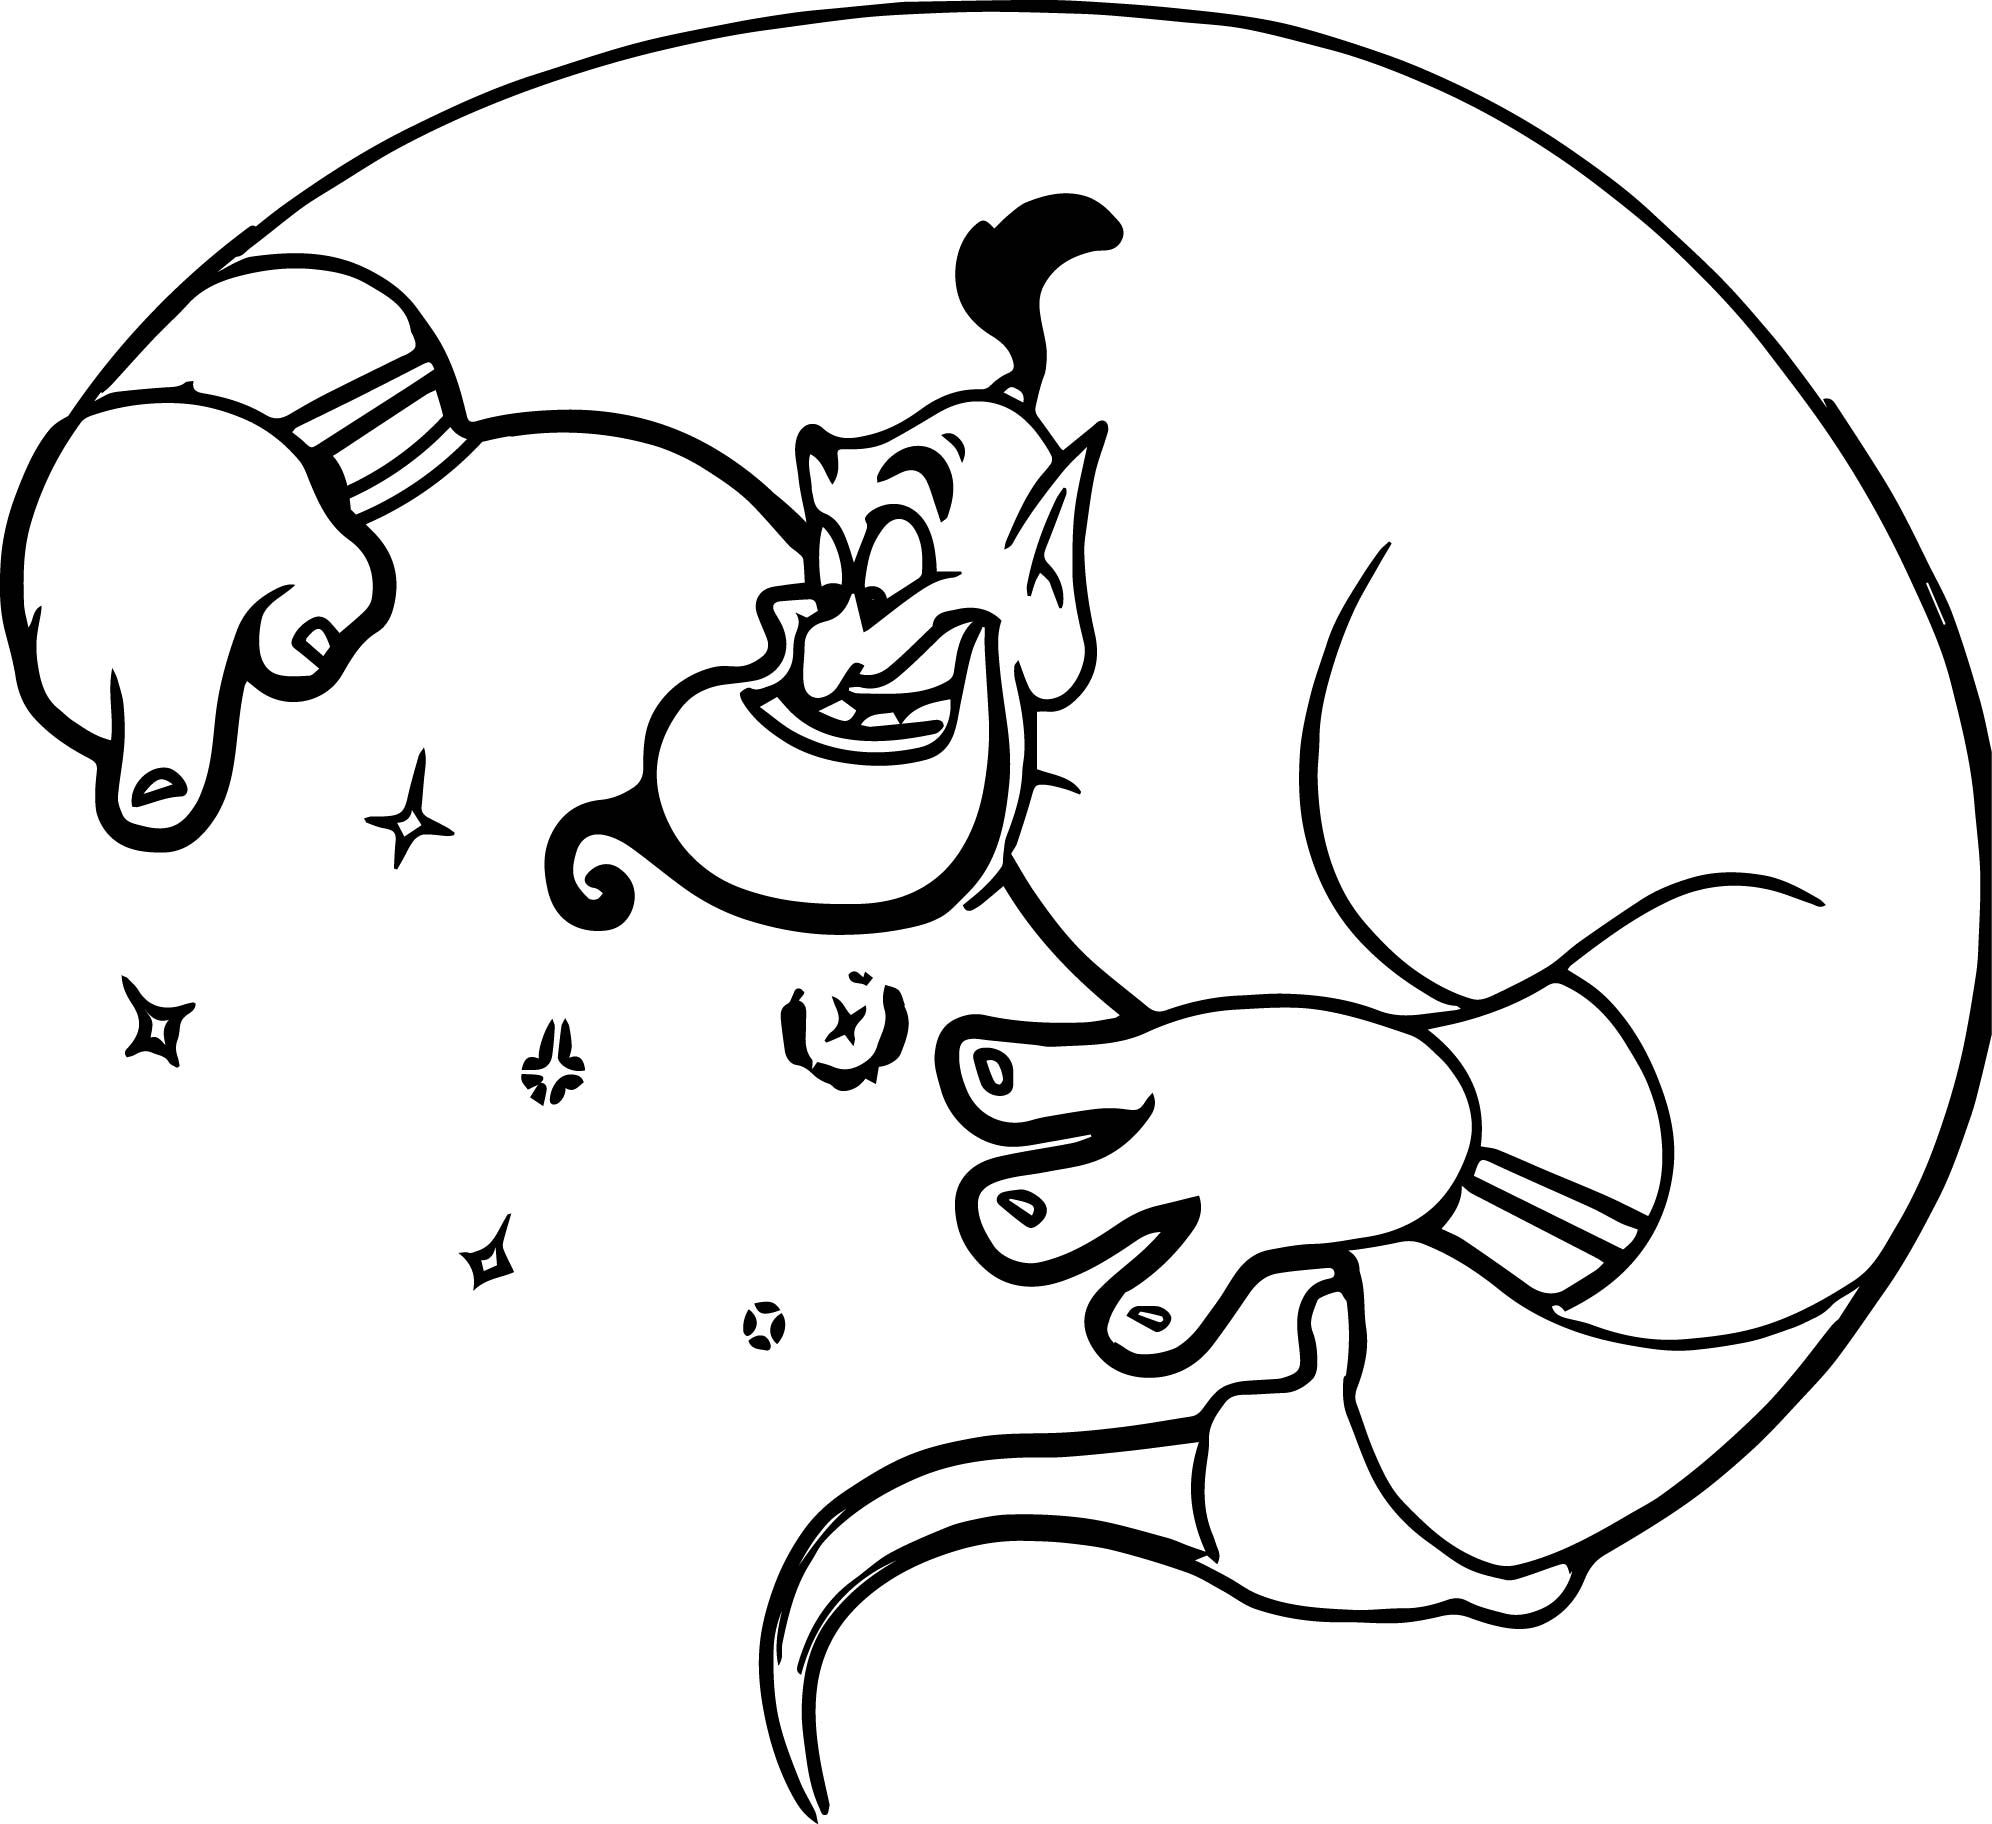 Genie Aladdin Free Coloring Pages Disney Coloring Pages Free Coloring Pages Coloring Pages